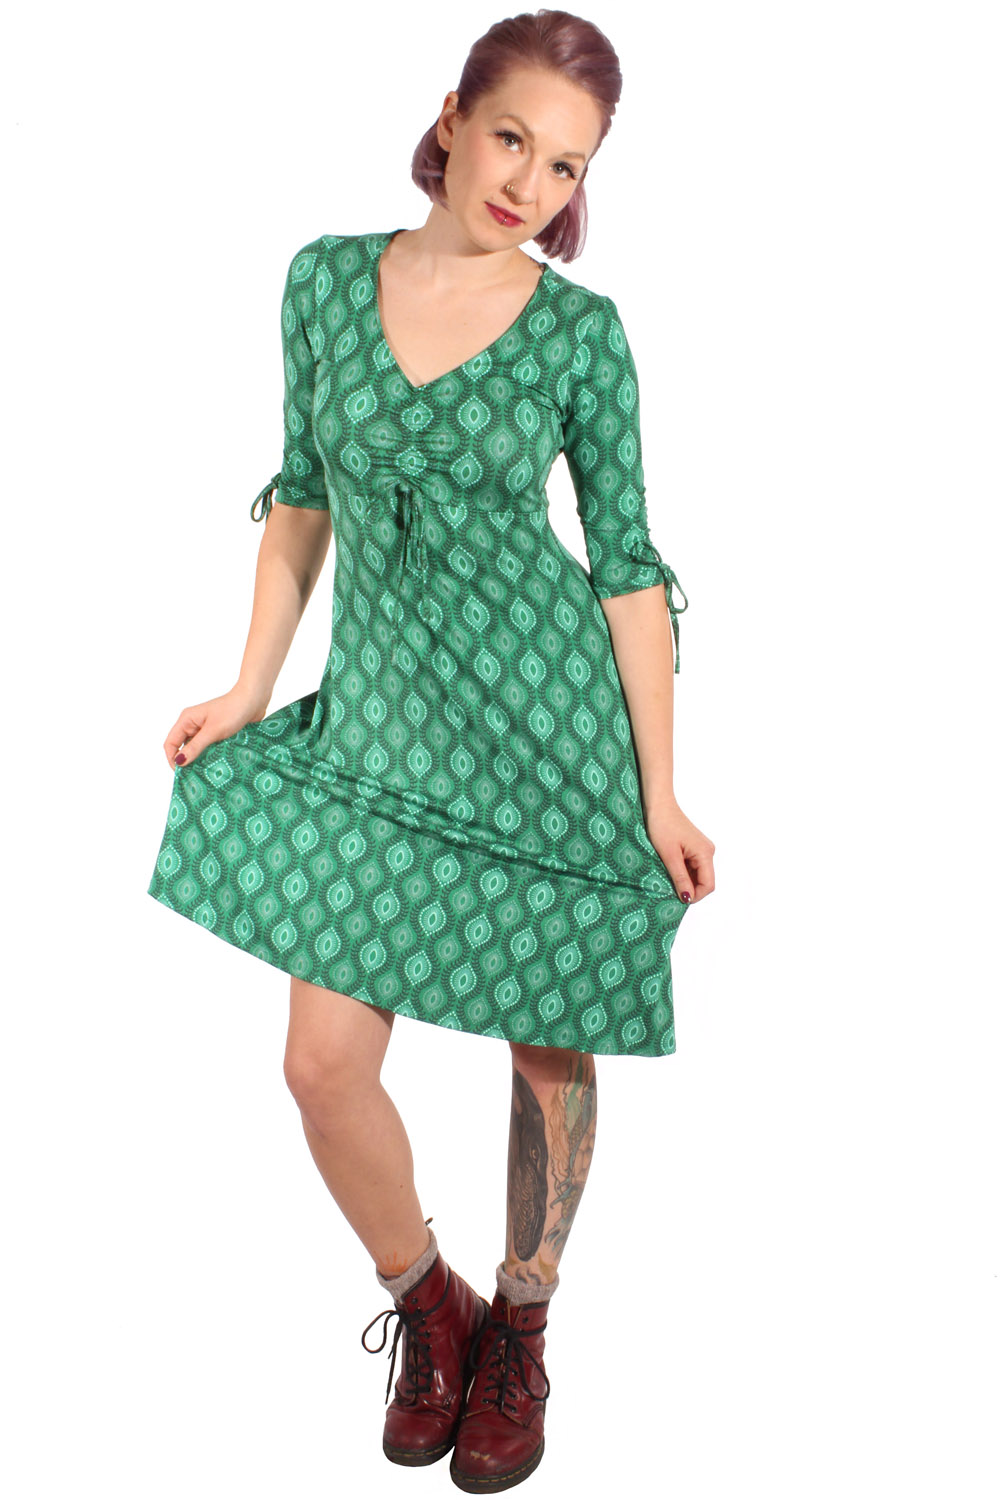 60s A-Linie 3/4arm Stretch Kleid Shirtkleid Jerseykleid grün